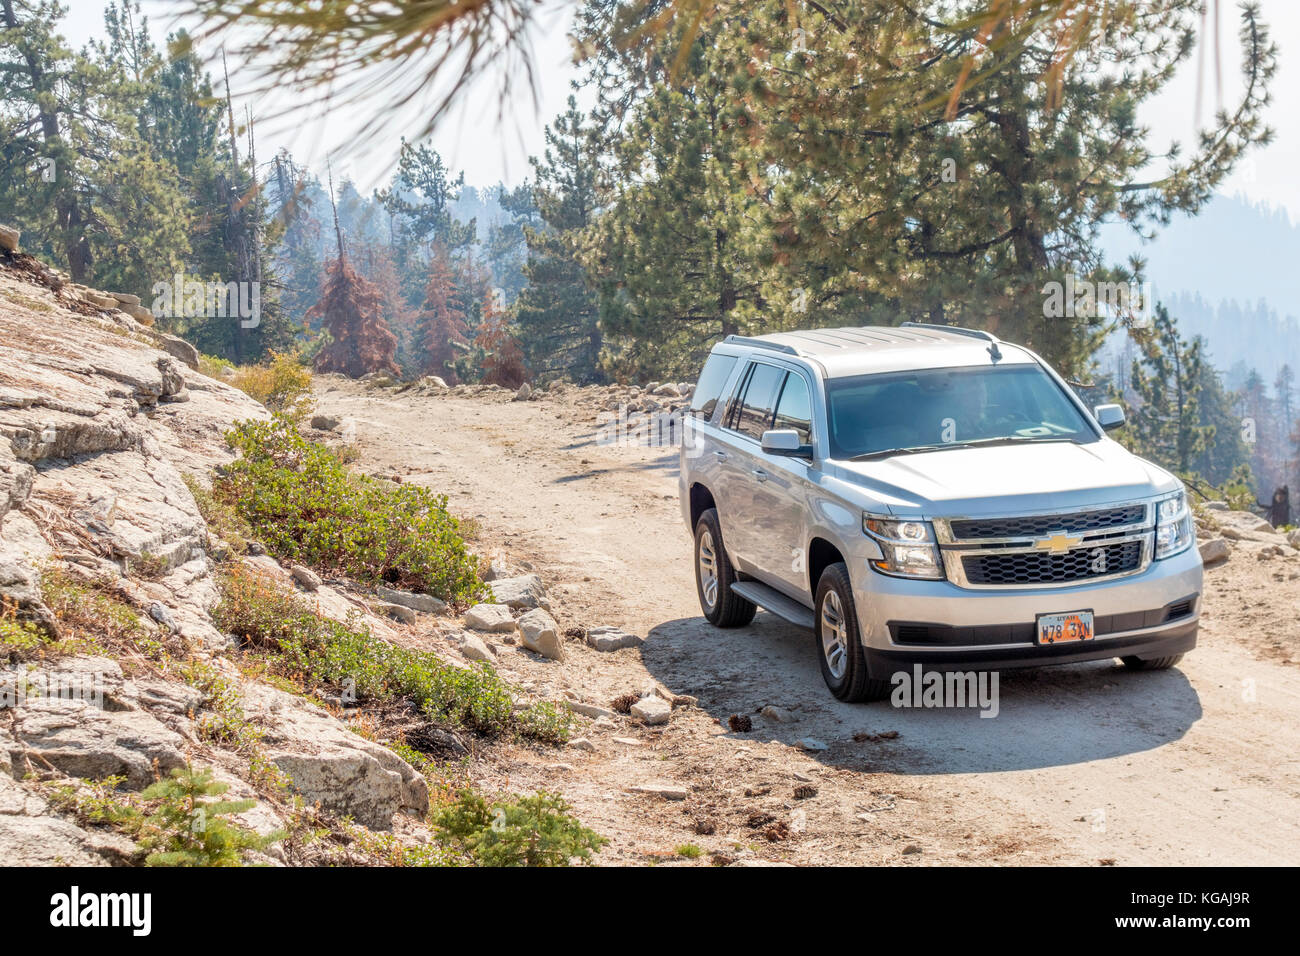 Full Size Suv Rental >> Full Size Suv Rental Car Stock Photos Full Size Suv Rental Car